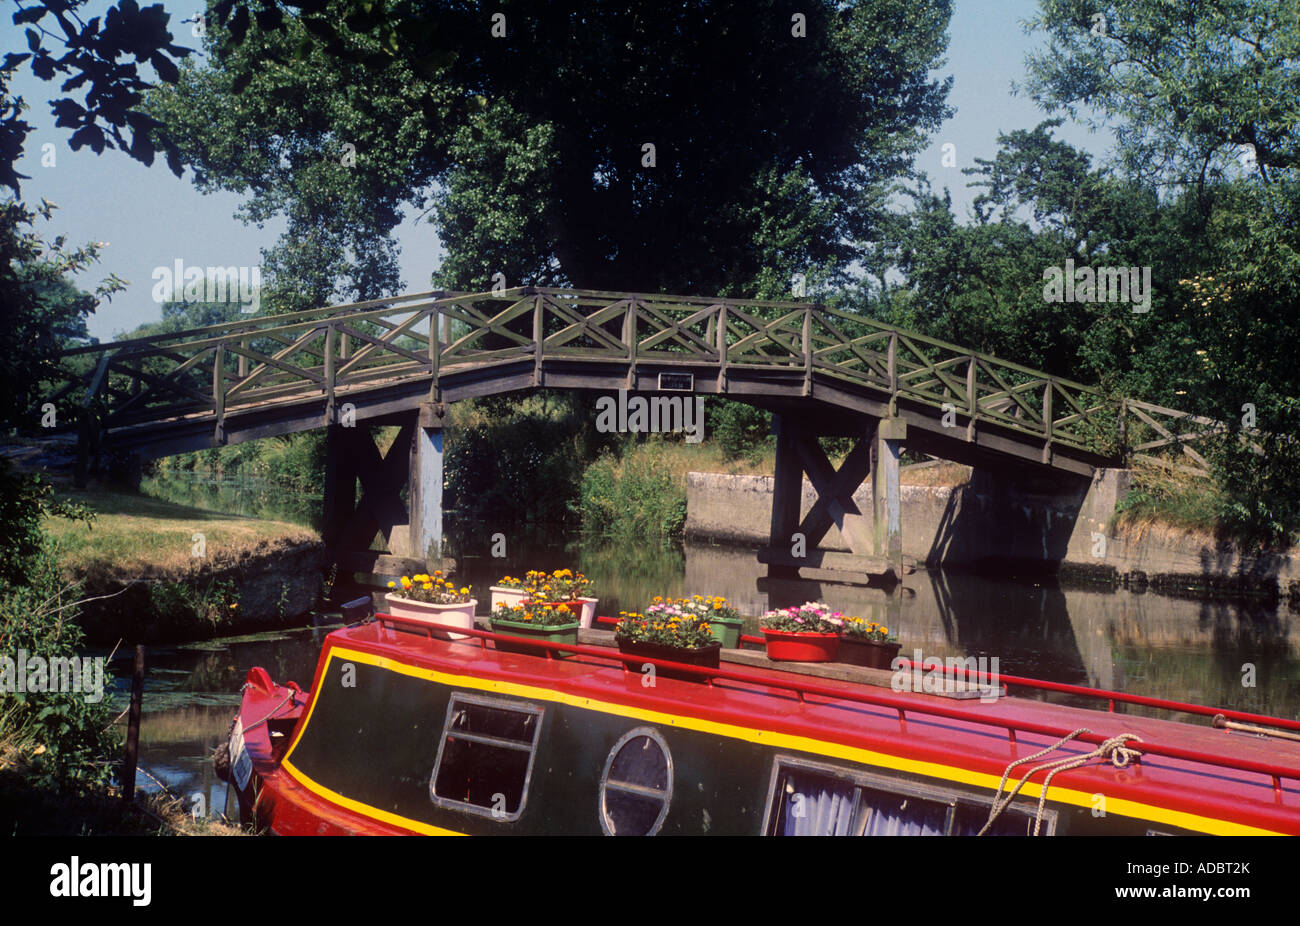 Kelmscot Footbridge over The River Thames, Oxfordshire, UK. - Stock Image